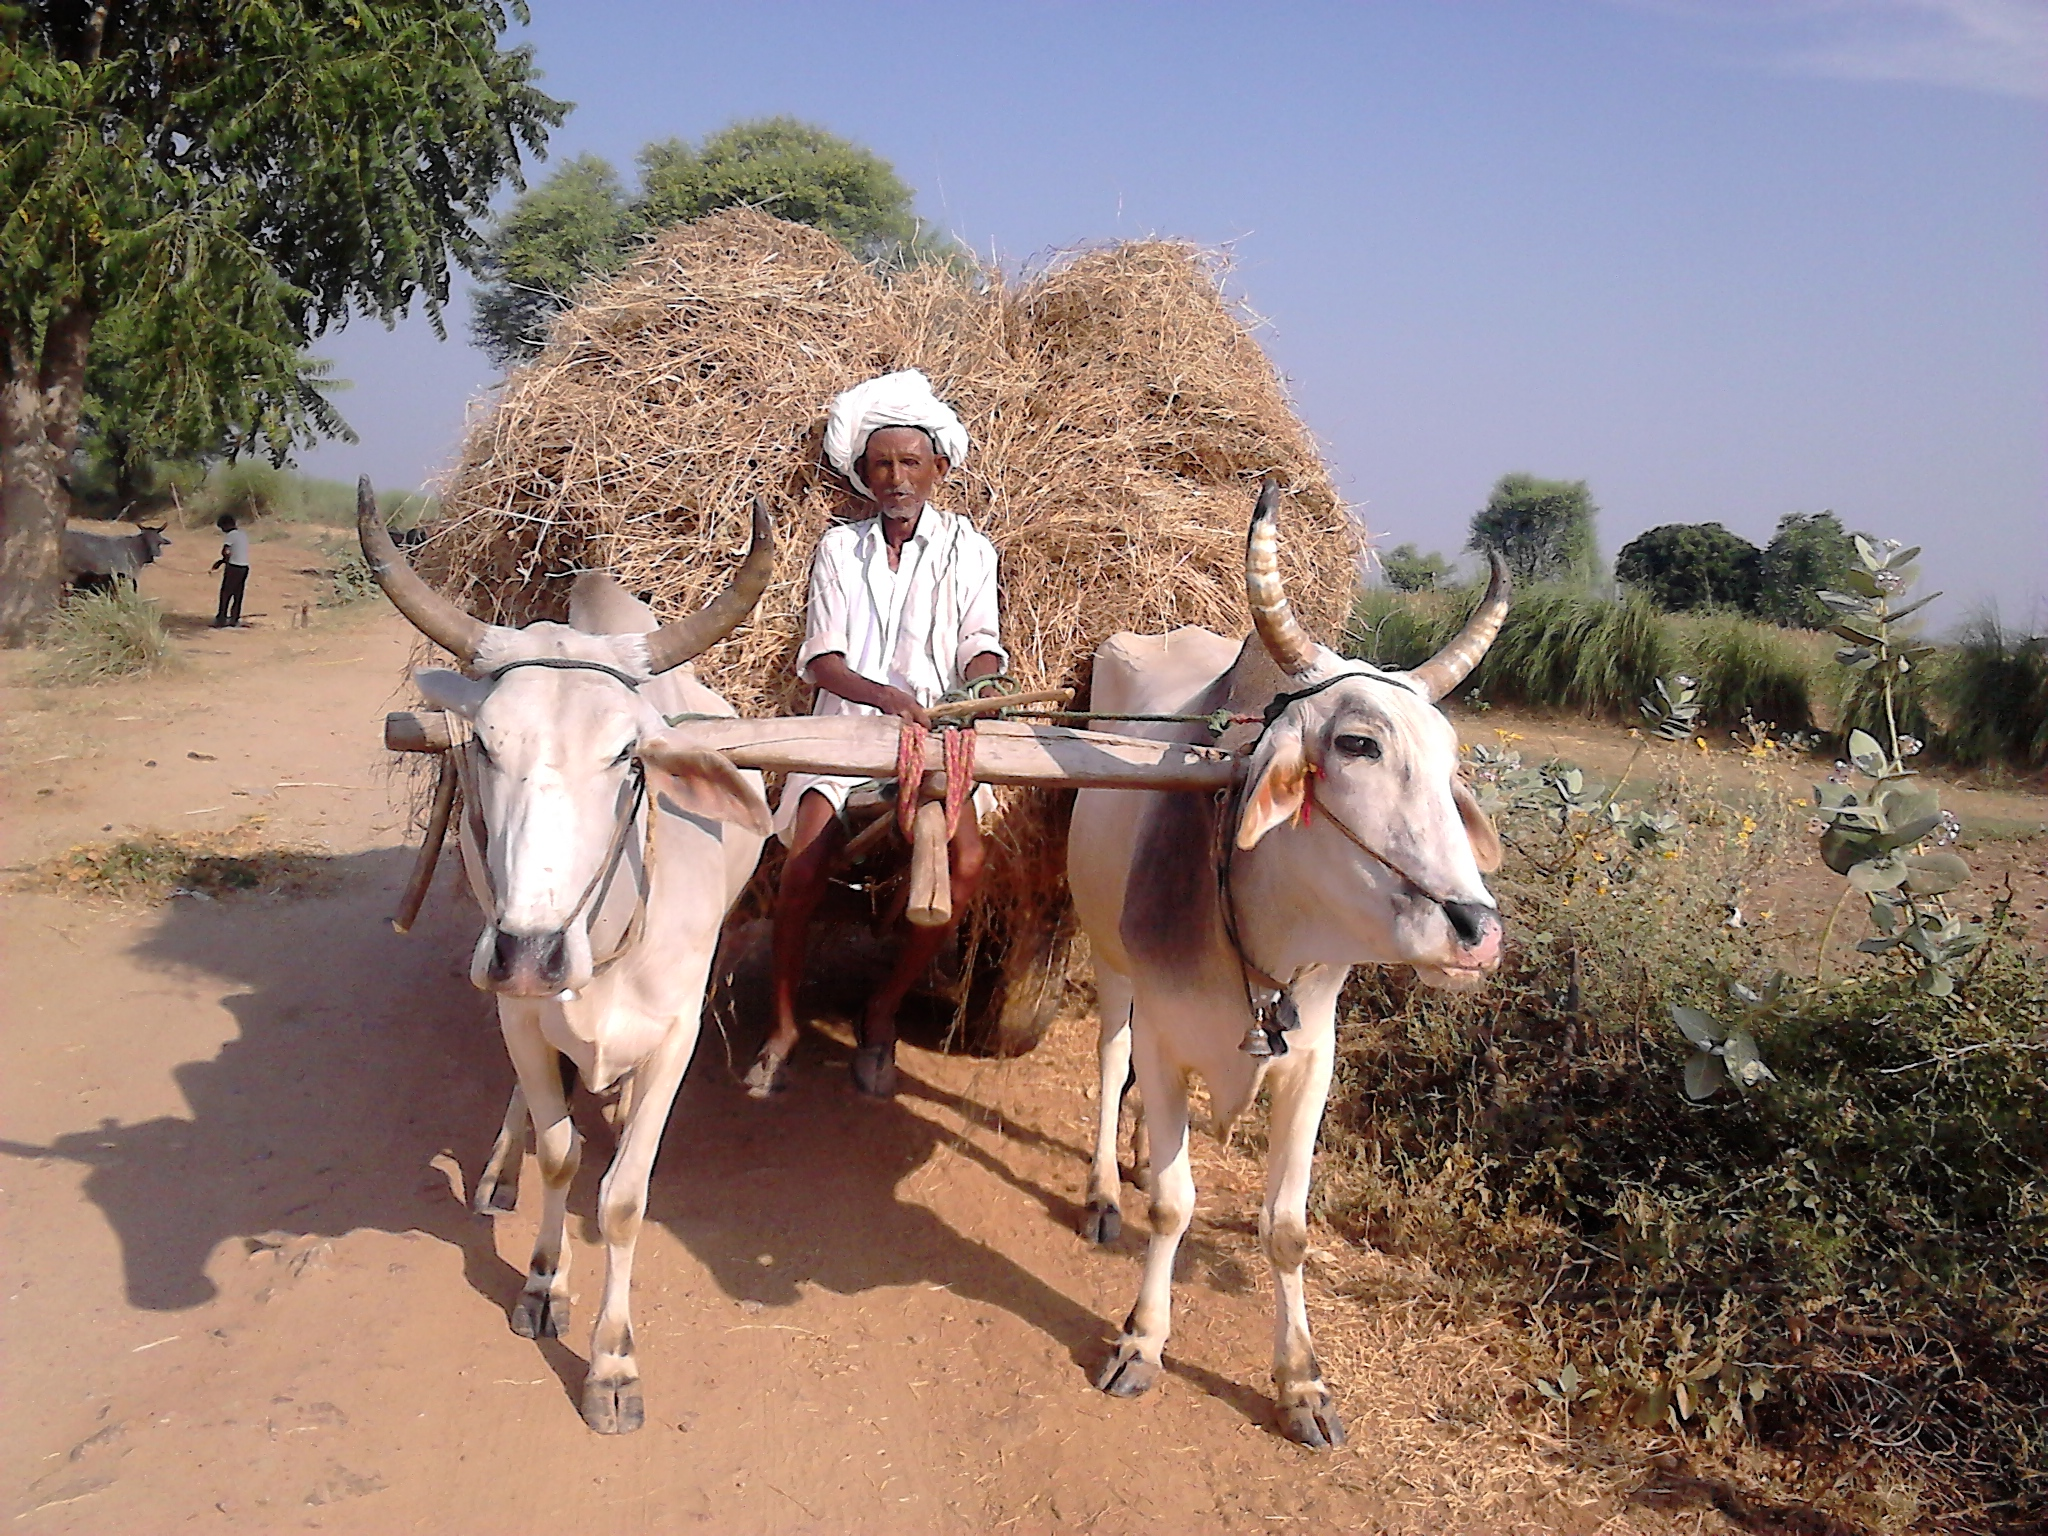 A Farmer carrying dry fodder